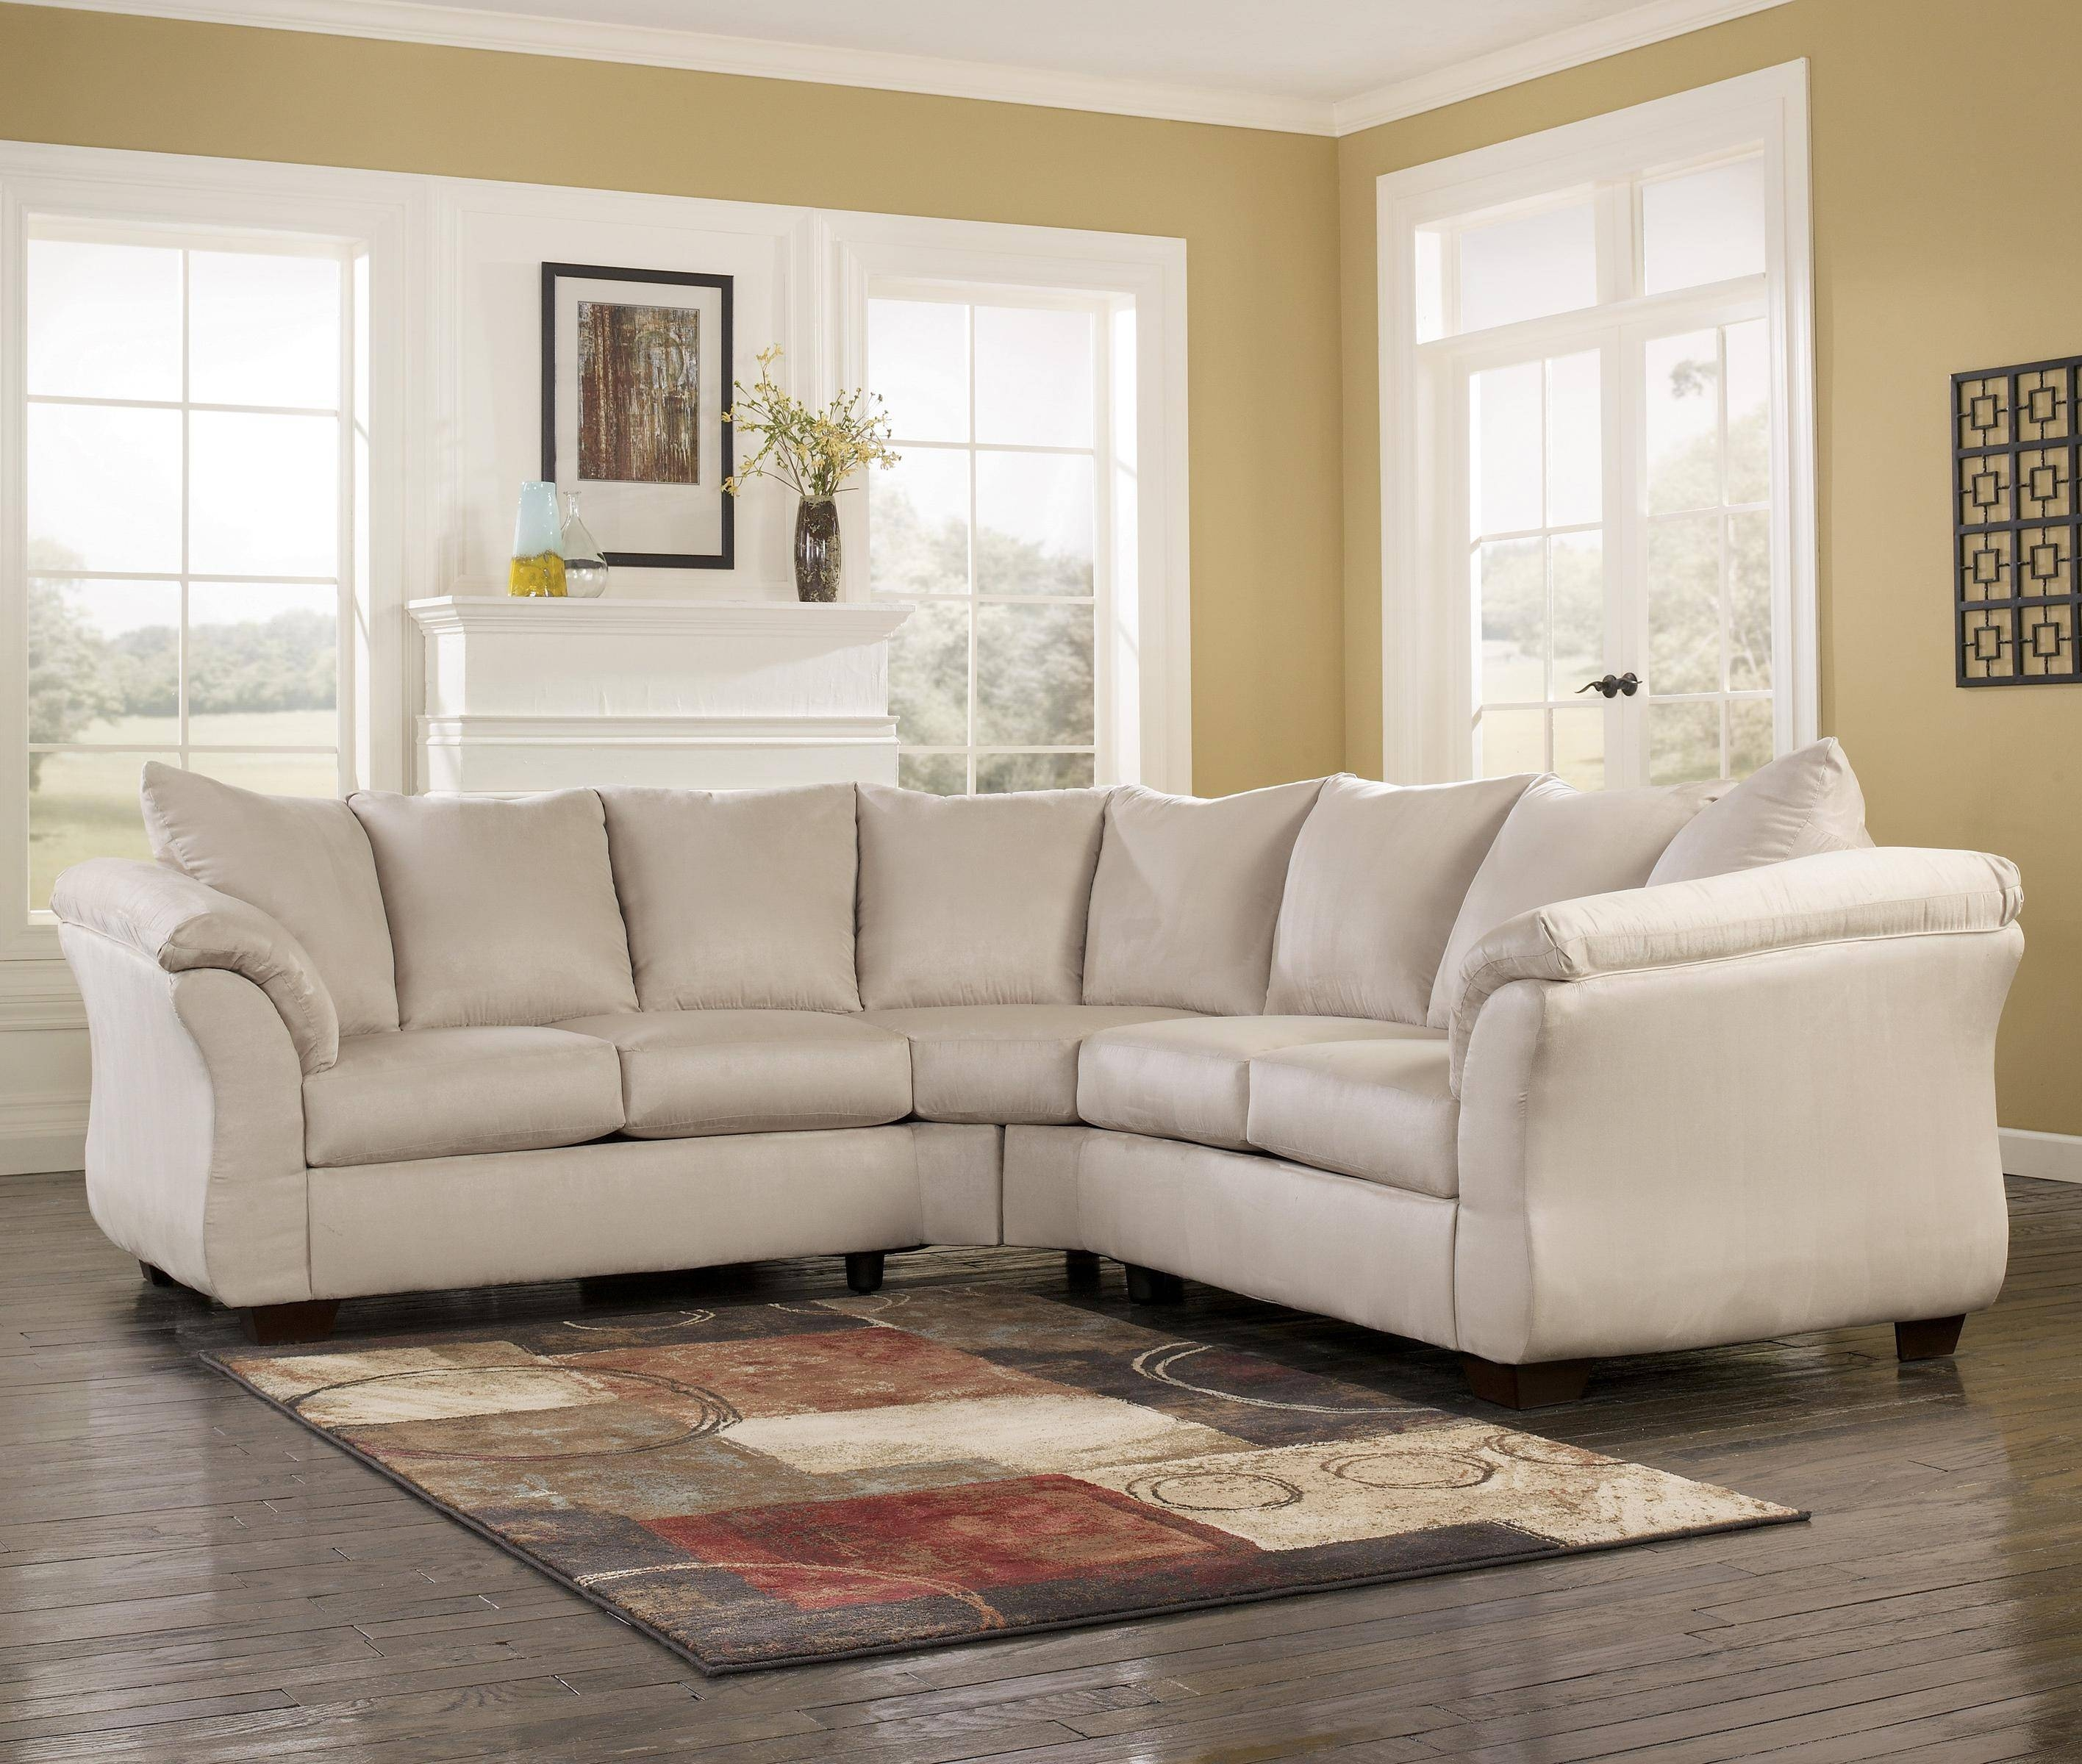 Contemporary Sectional Sofa With Sweeping Pillow Armssignature with regard to Signature Design Sectional Sofas (Image 6 of 15)